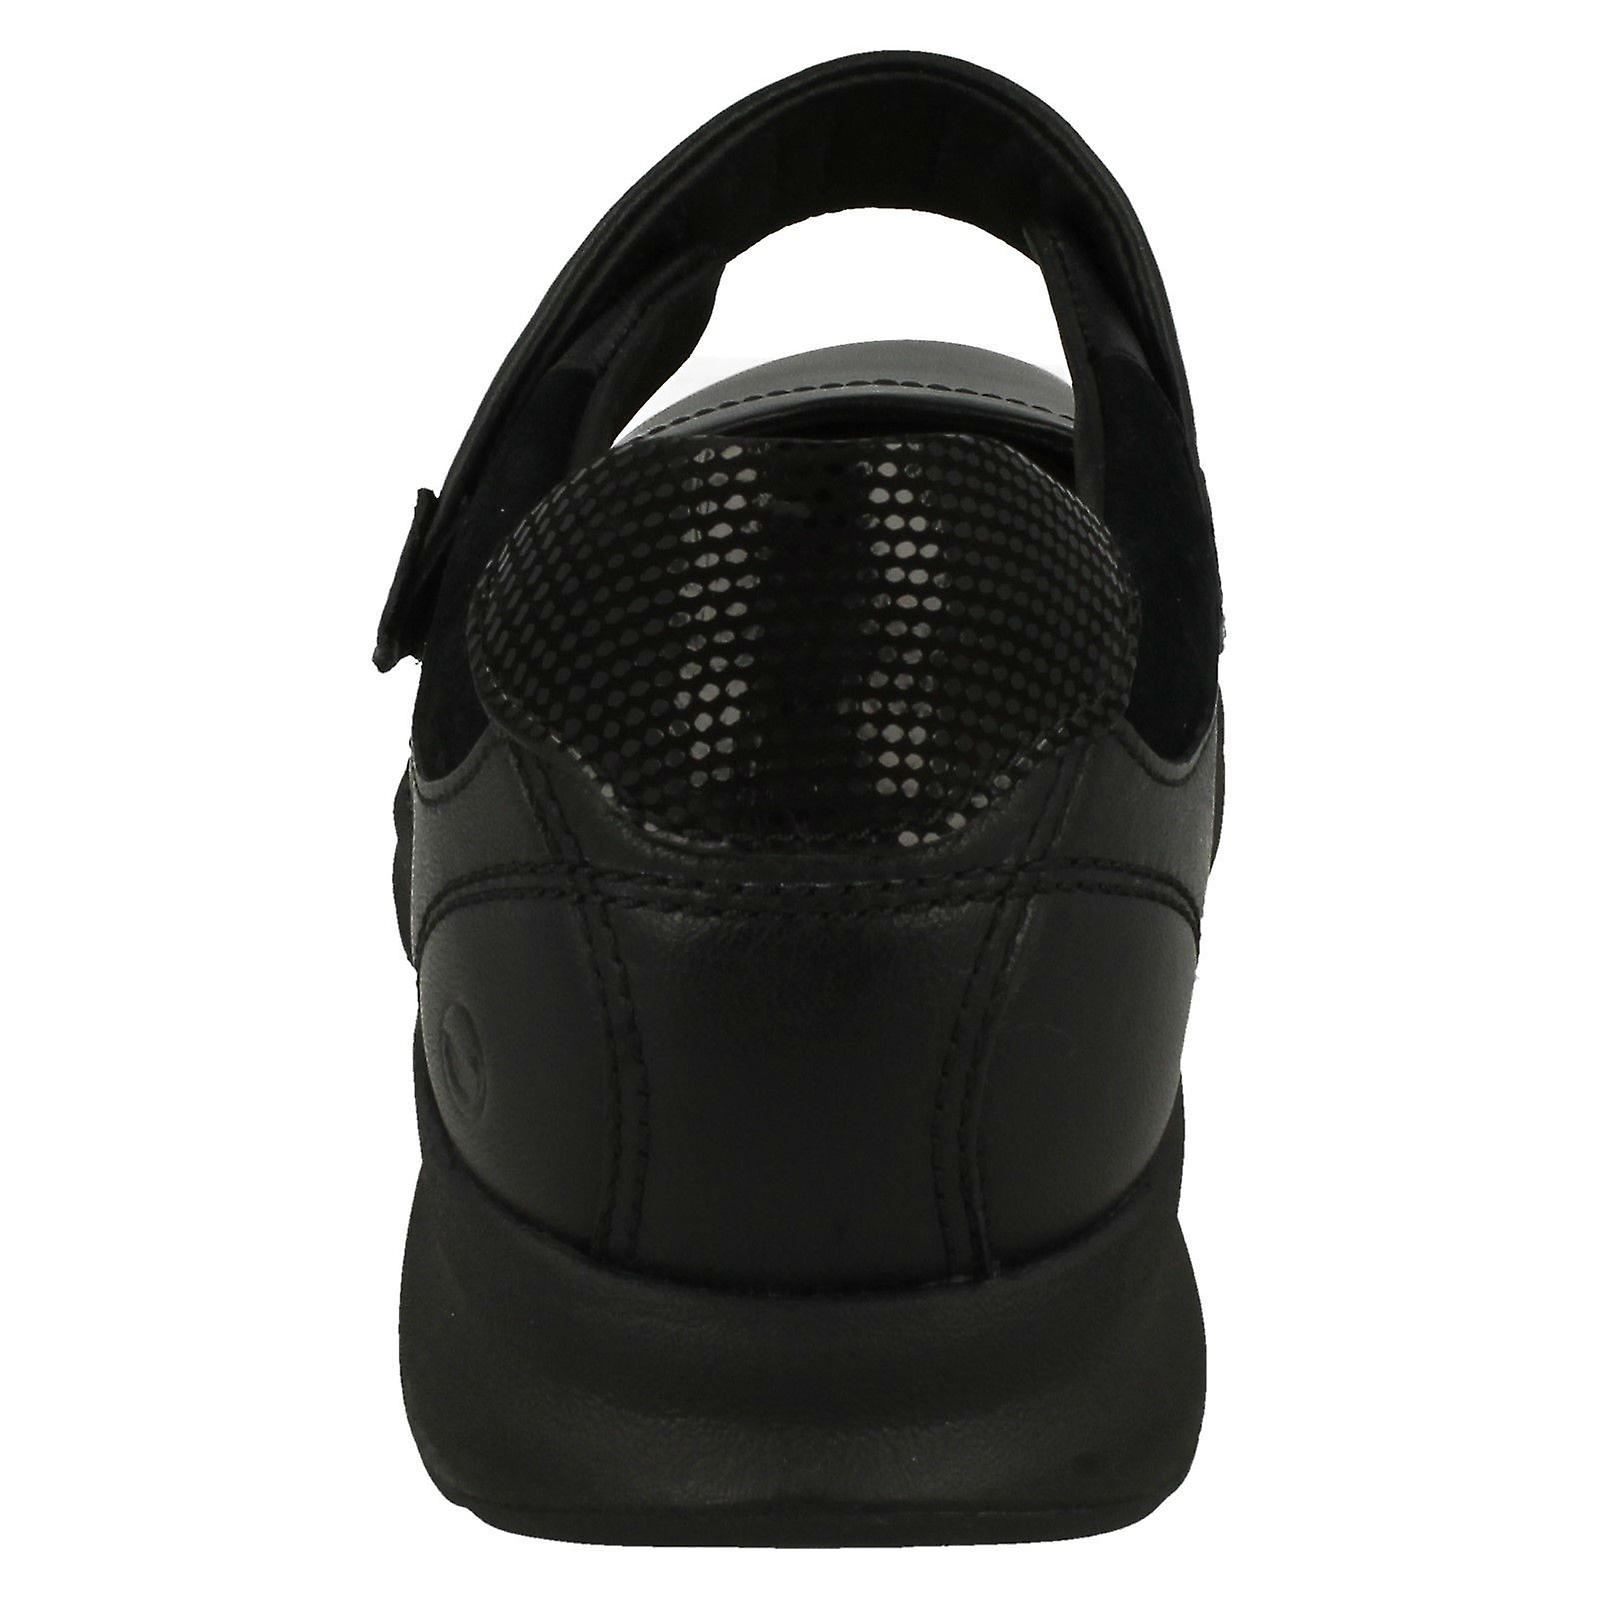 Ladies Clarks Casual Flat Mary Jane Shoes Un Adorn Strap